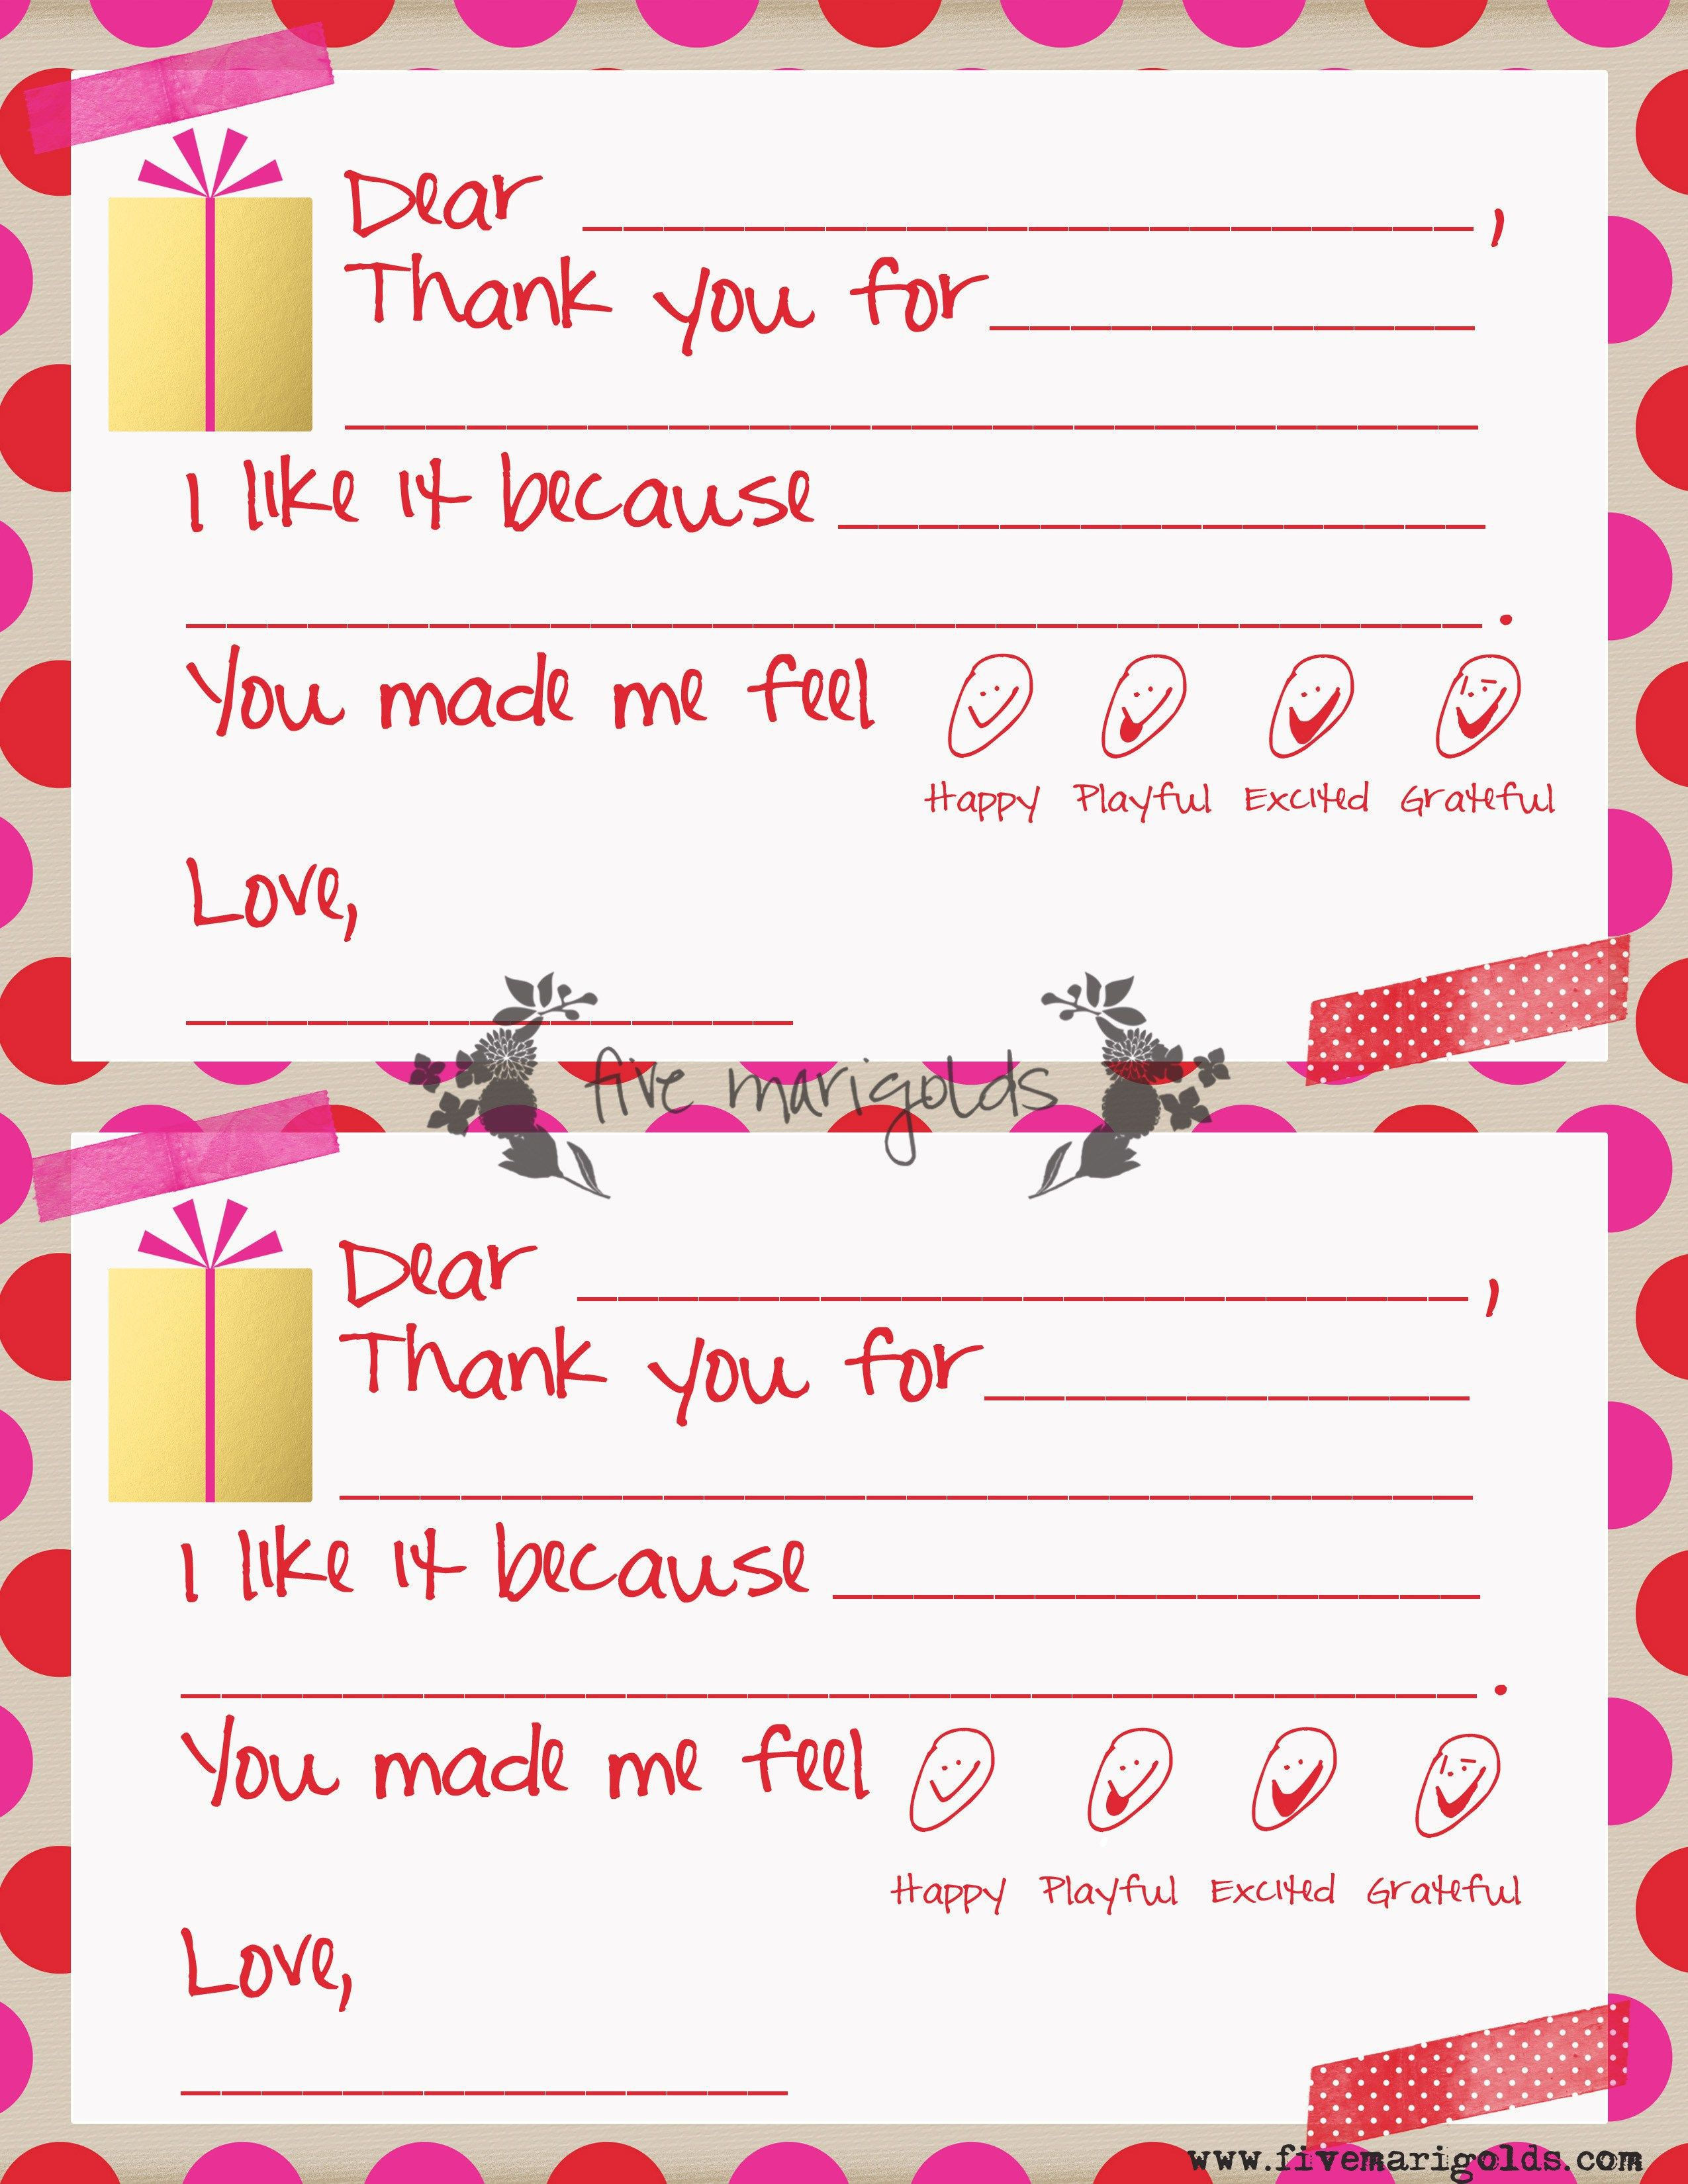 000 Unforgettable Thank You Note Template For Kid Highest Clarity  Kids Child Pdf LetterFull